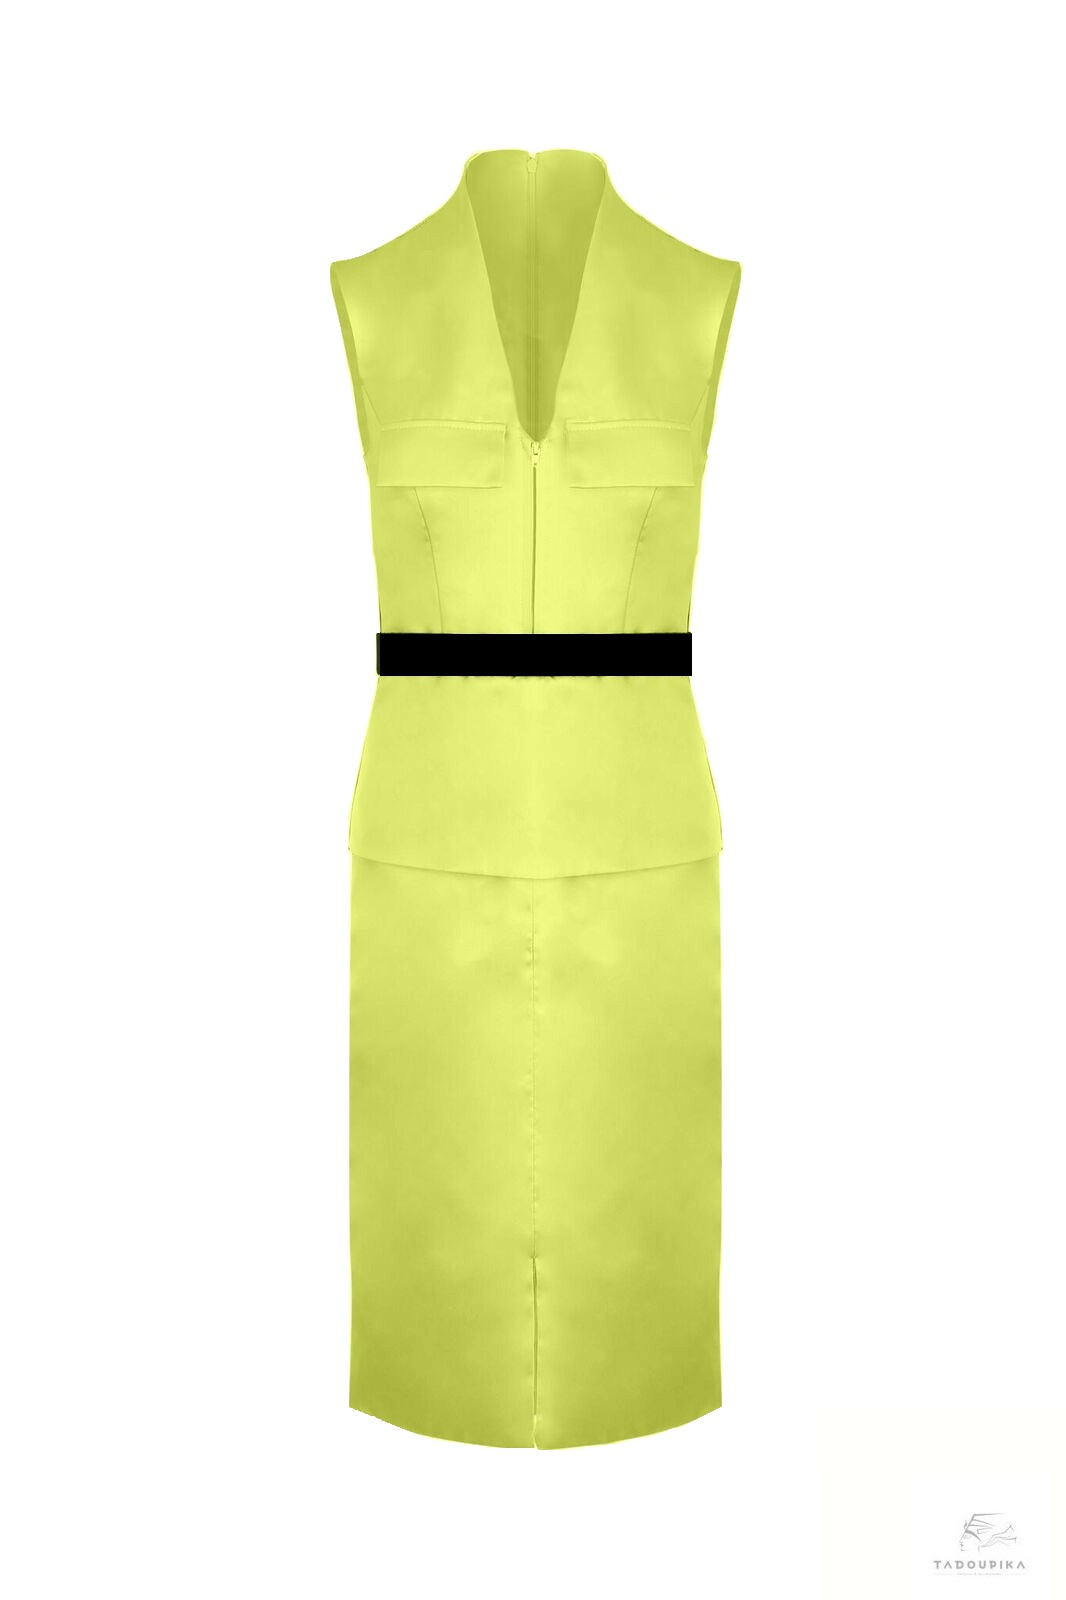 robe workin girl belt dress lenght to knee satin dress office dress made in france curves sur mesure yellow dress contrast dress illusion dress tadoupika